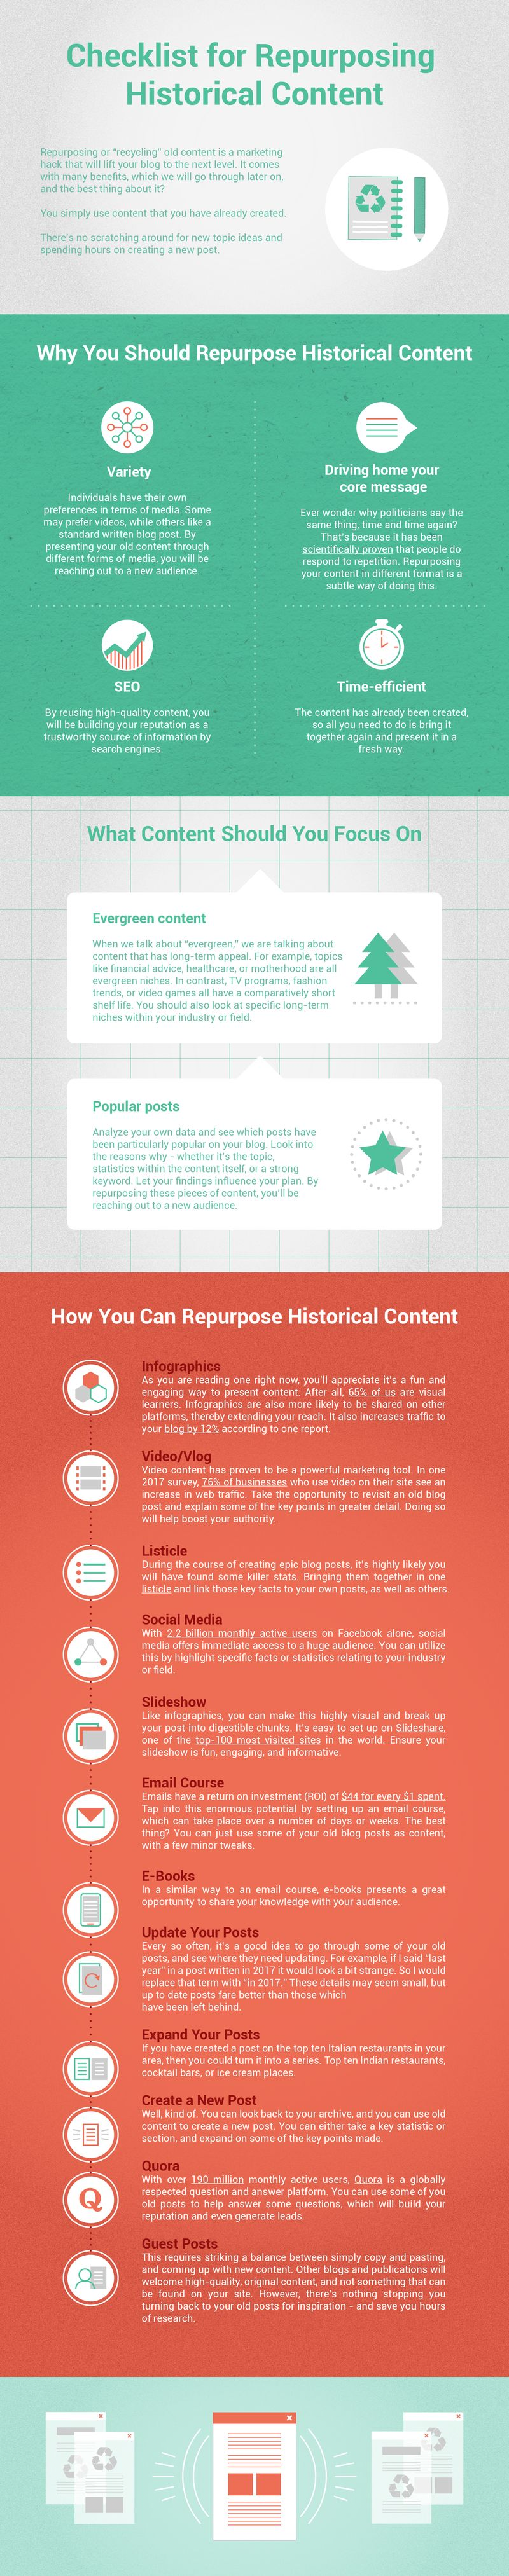 Checklist for Repurposing Historical Content [Infographic